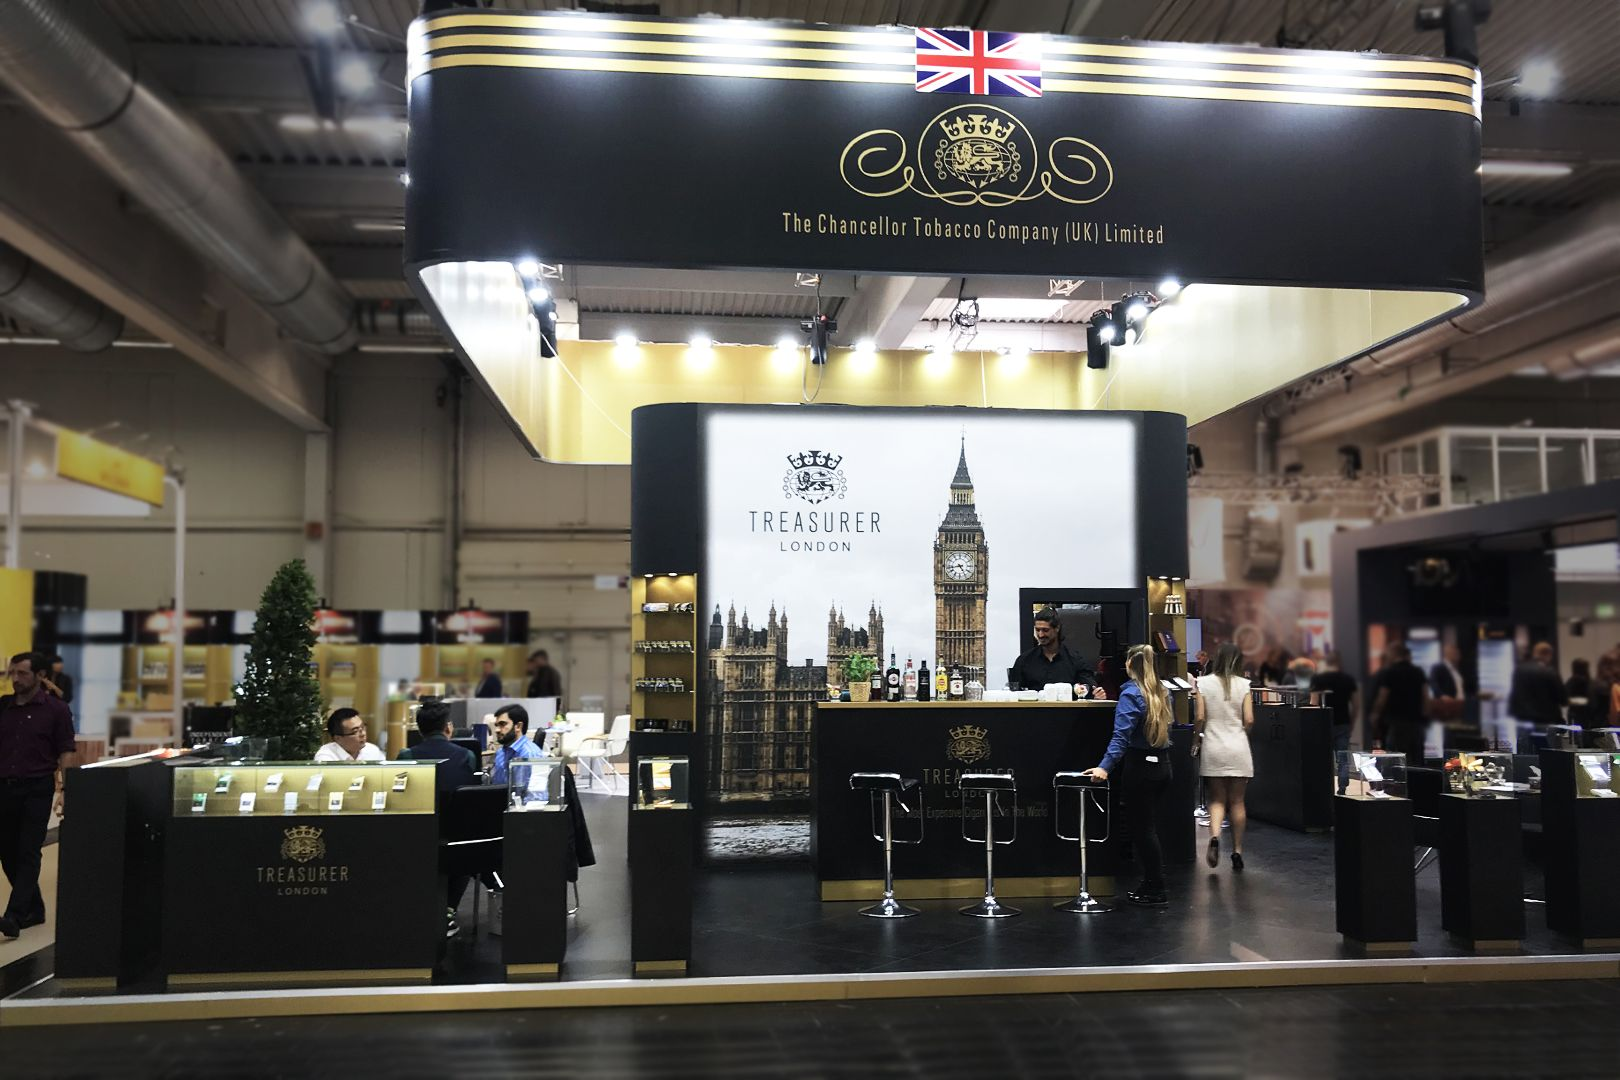 The Chancellor Tobacco Company  #chancellortobacco #tobaccocompany #tobaccotradefair #tobaccostand #standdesign #britainstand  #ukstands #exhibitionstand #exhibitionbooth #customstand #customstands #custommadestand #tailoredstand